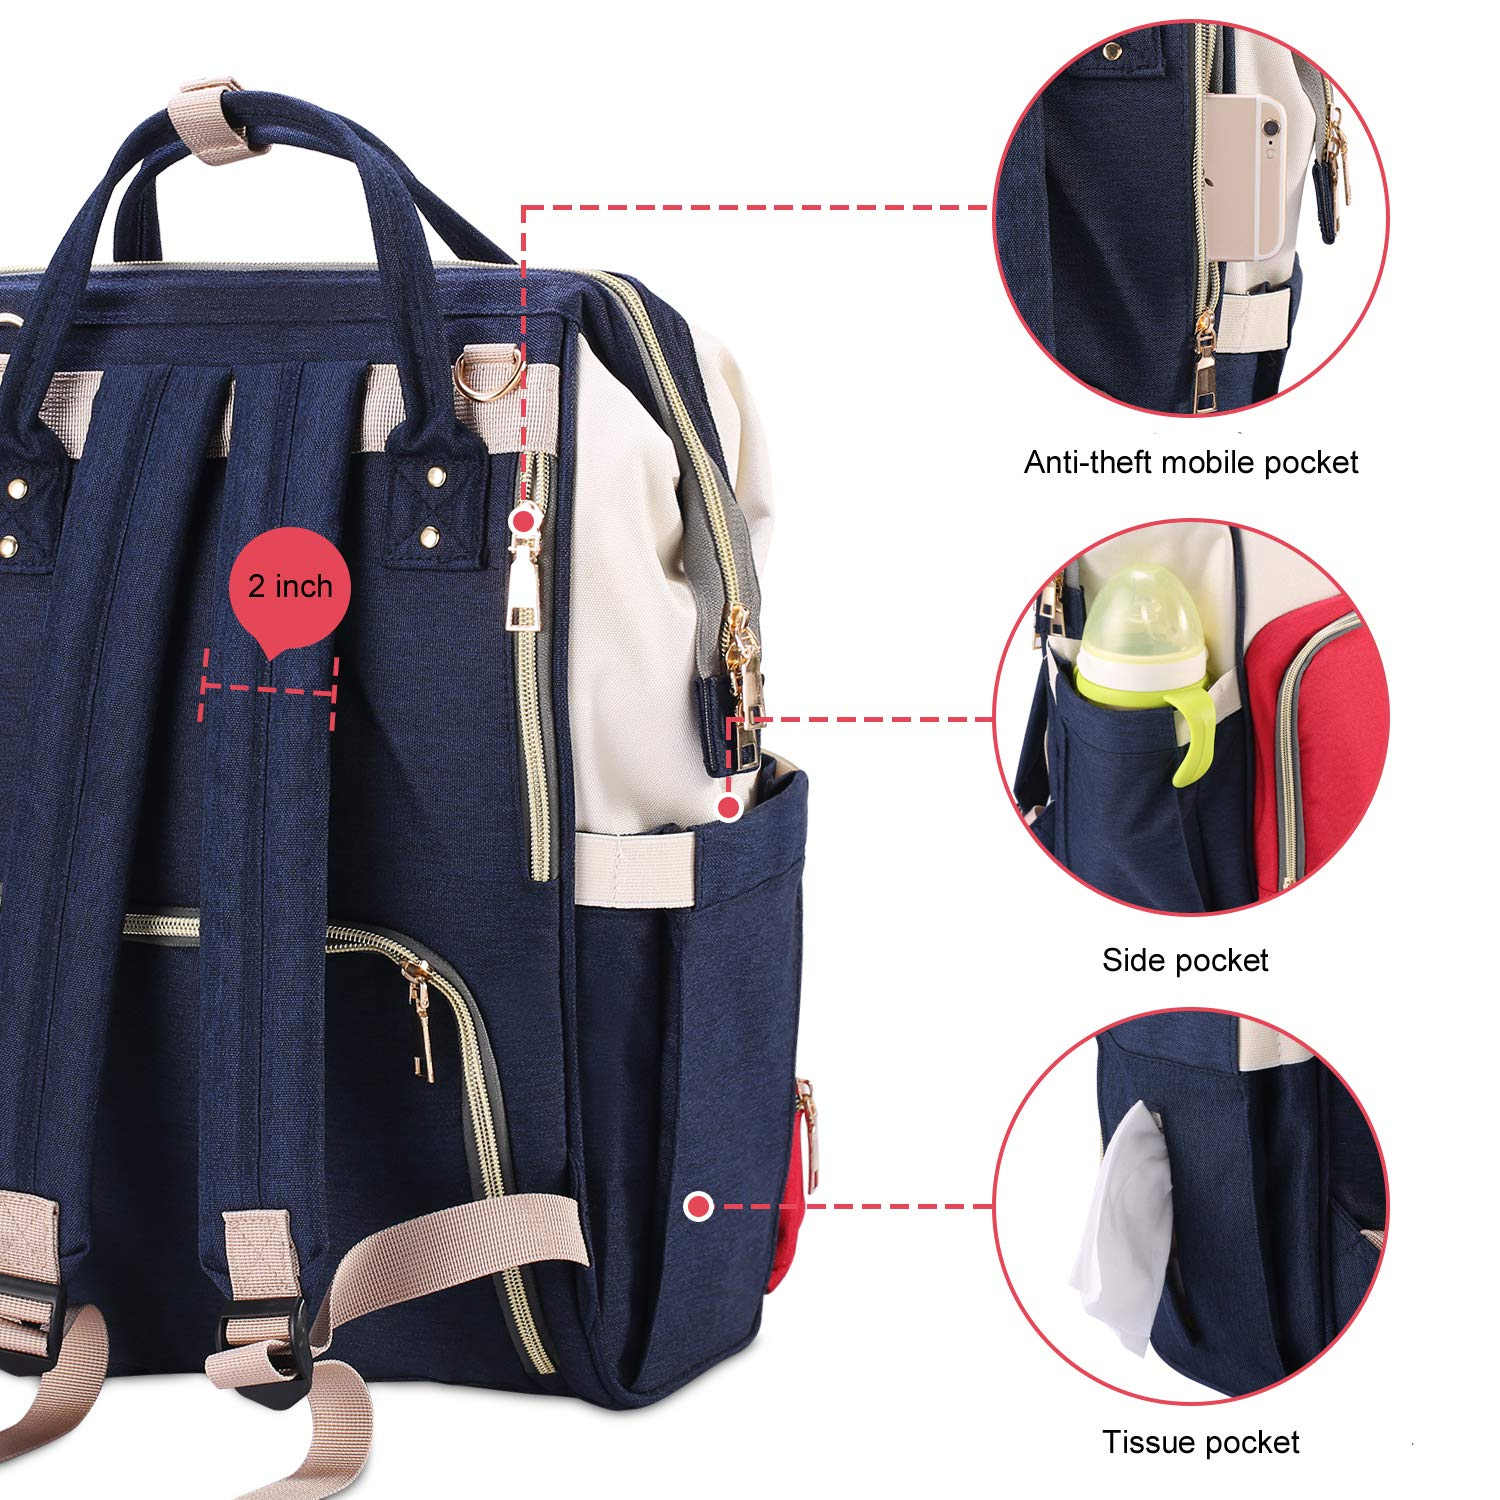 Eocean Baby Diaper Bag Large Capacity Mommy Backpack Baby Nappy Tote Bags Multi-Function Travelling Backpack for Mom Travellers Nurses Students (Red+White+Blue)